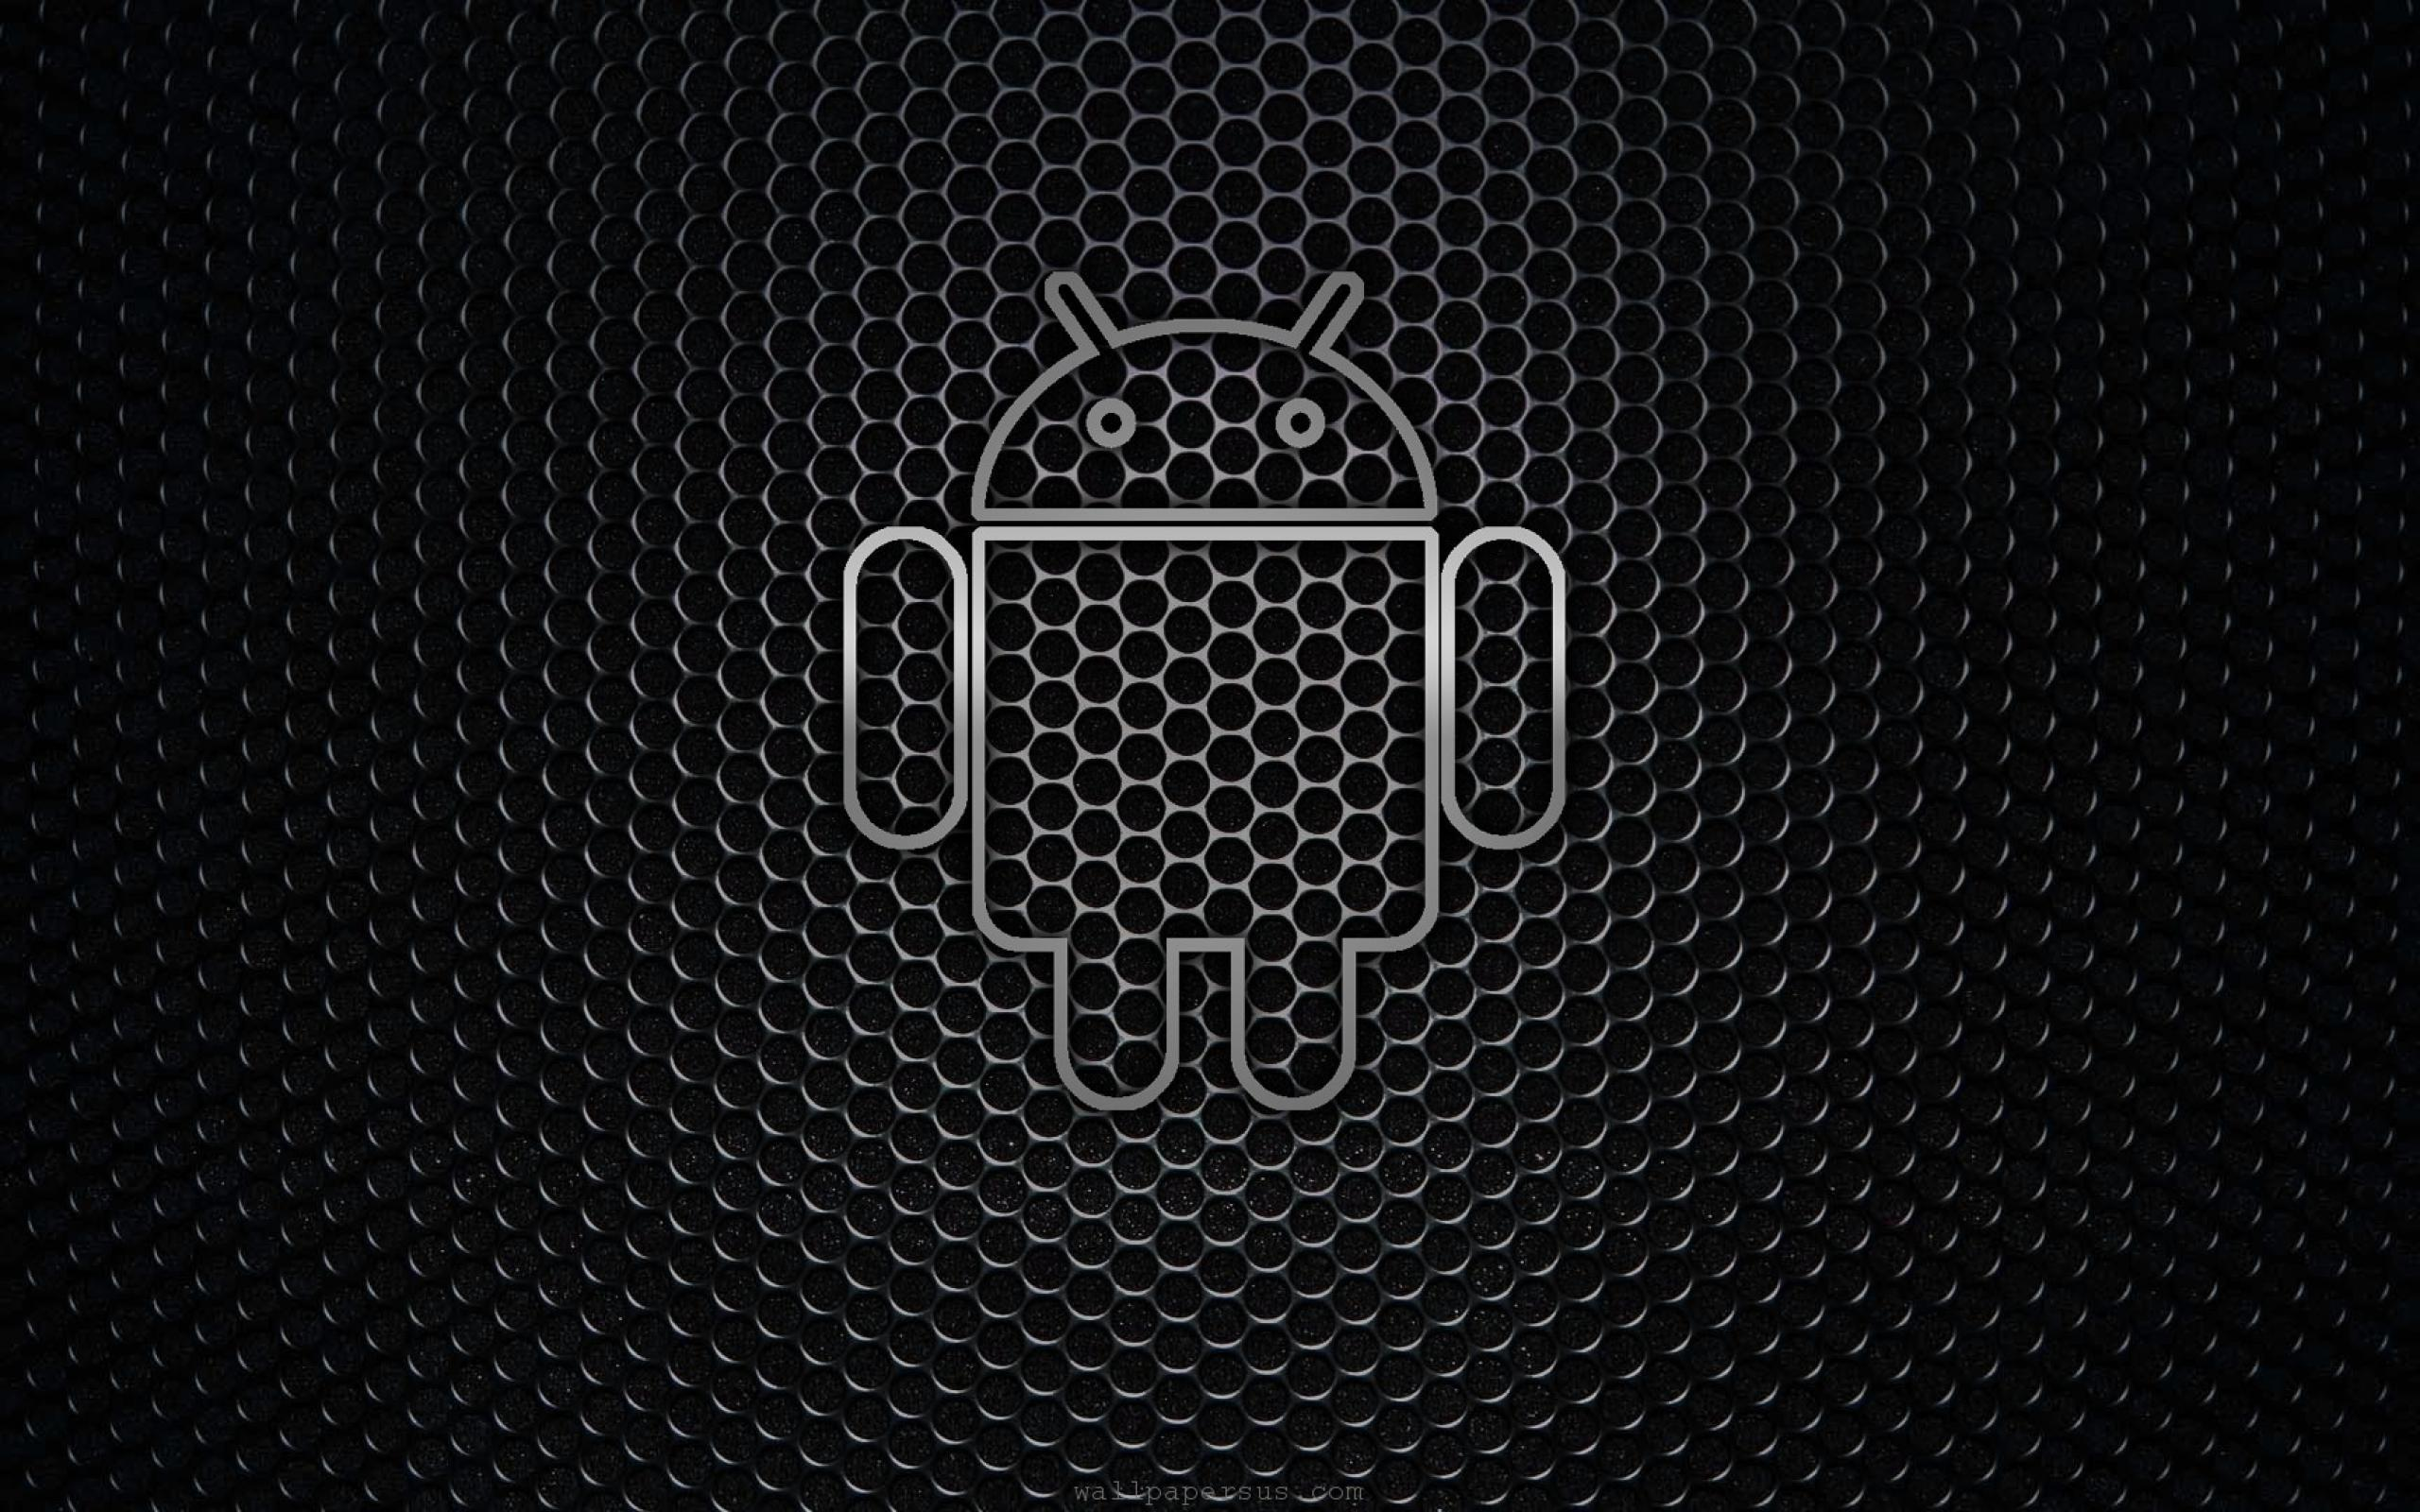 Android Dark Wallpaper - WallpaperSafari